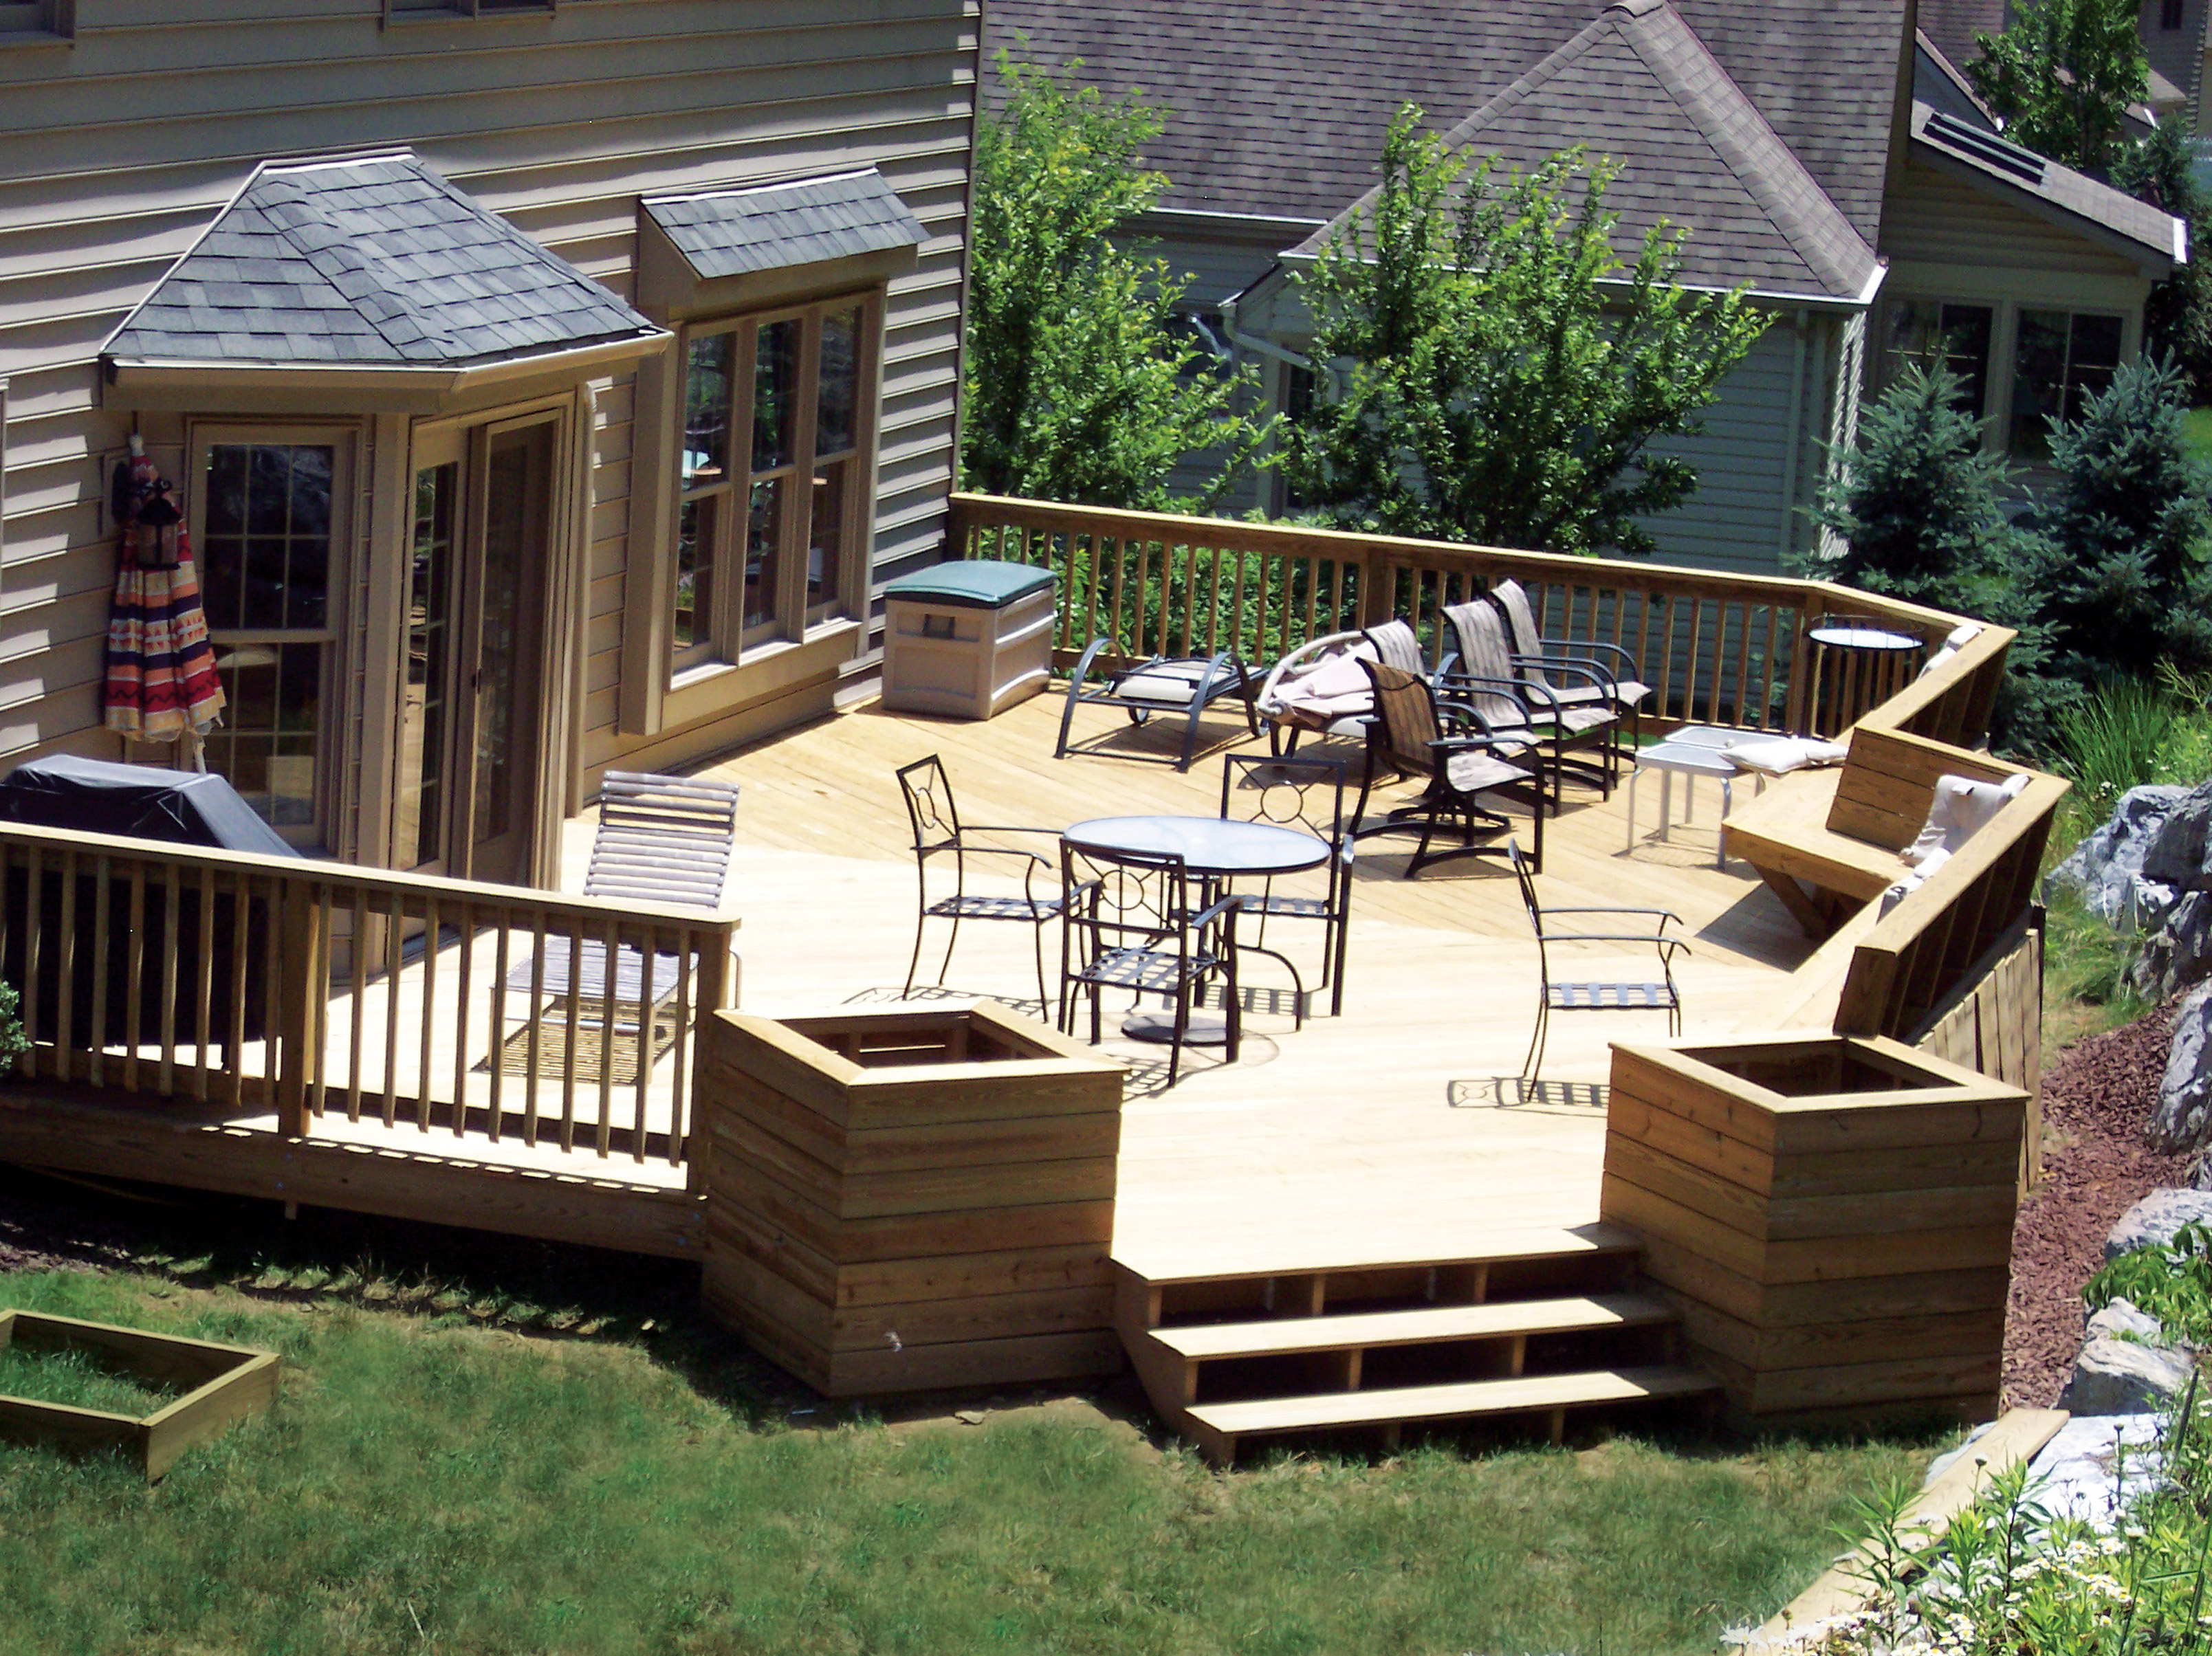 Designs Of Backyard Decks : Sizzling Summer Decks  Lancaster PA Remodeling Tips & TricksLancaster